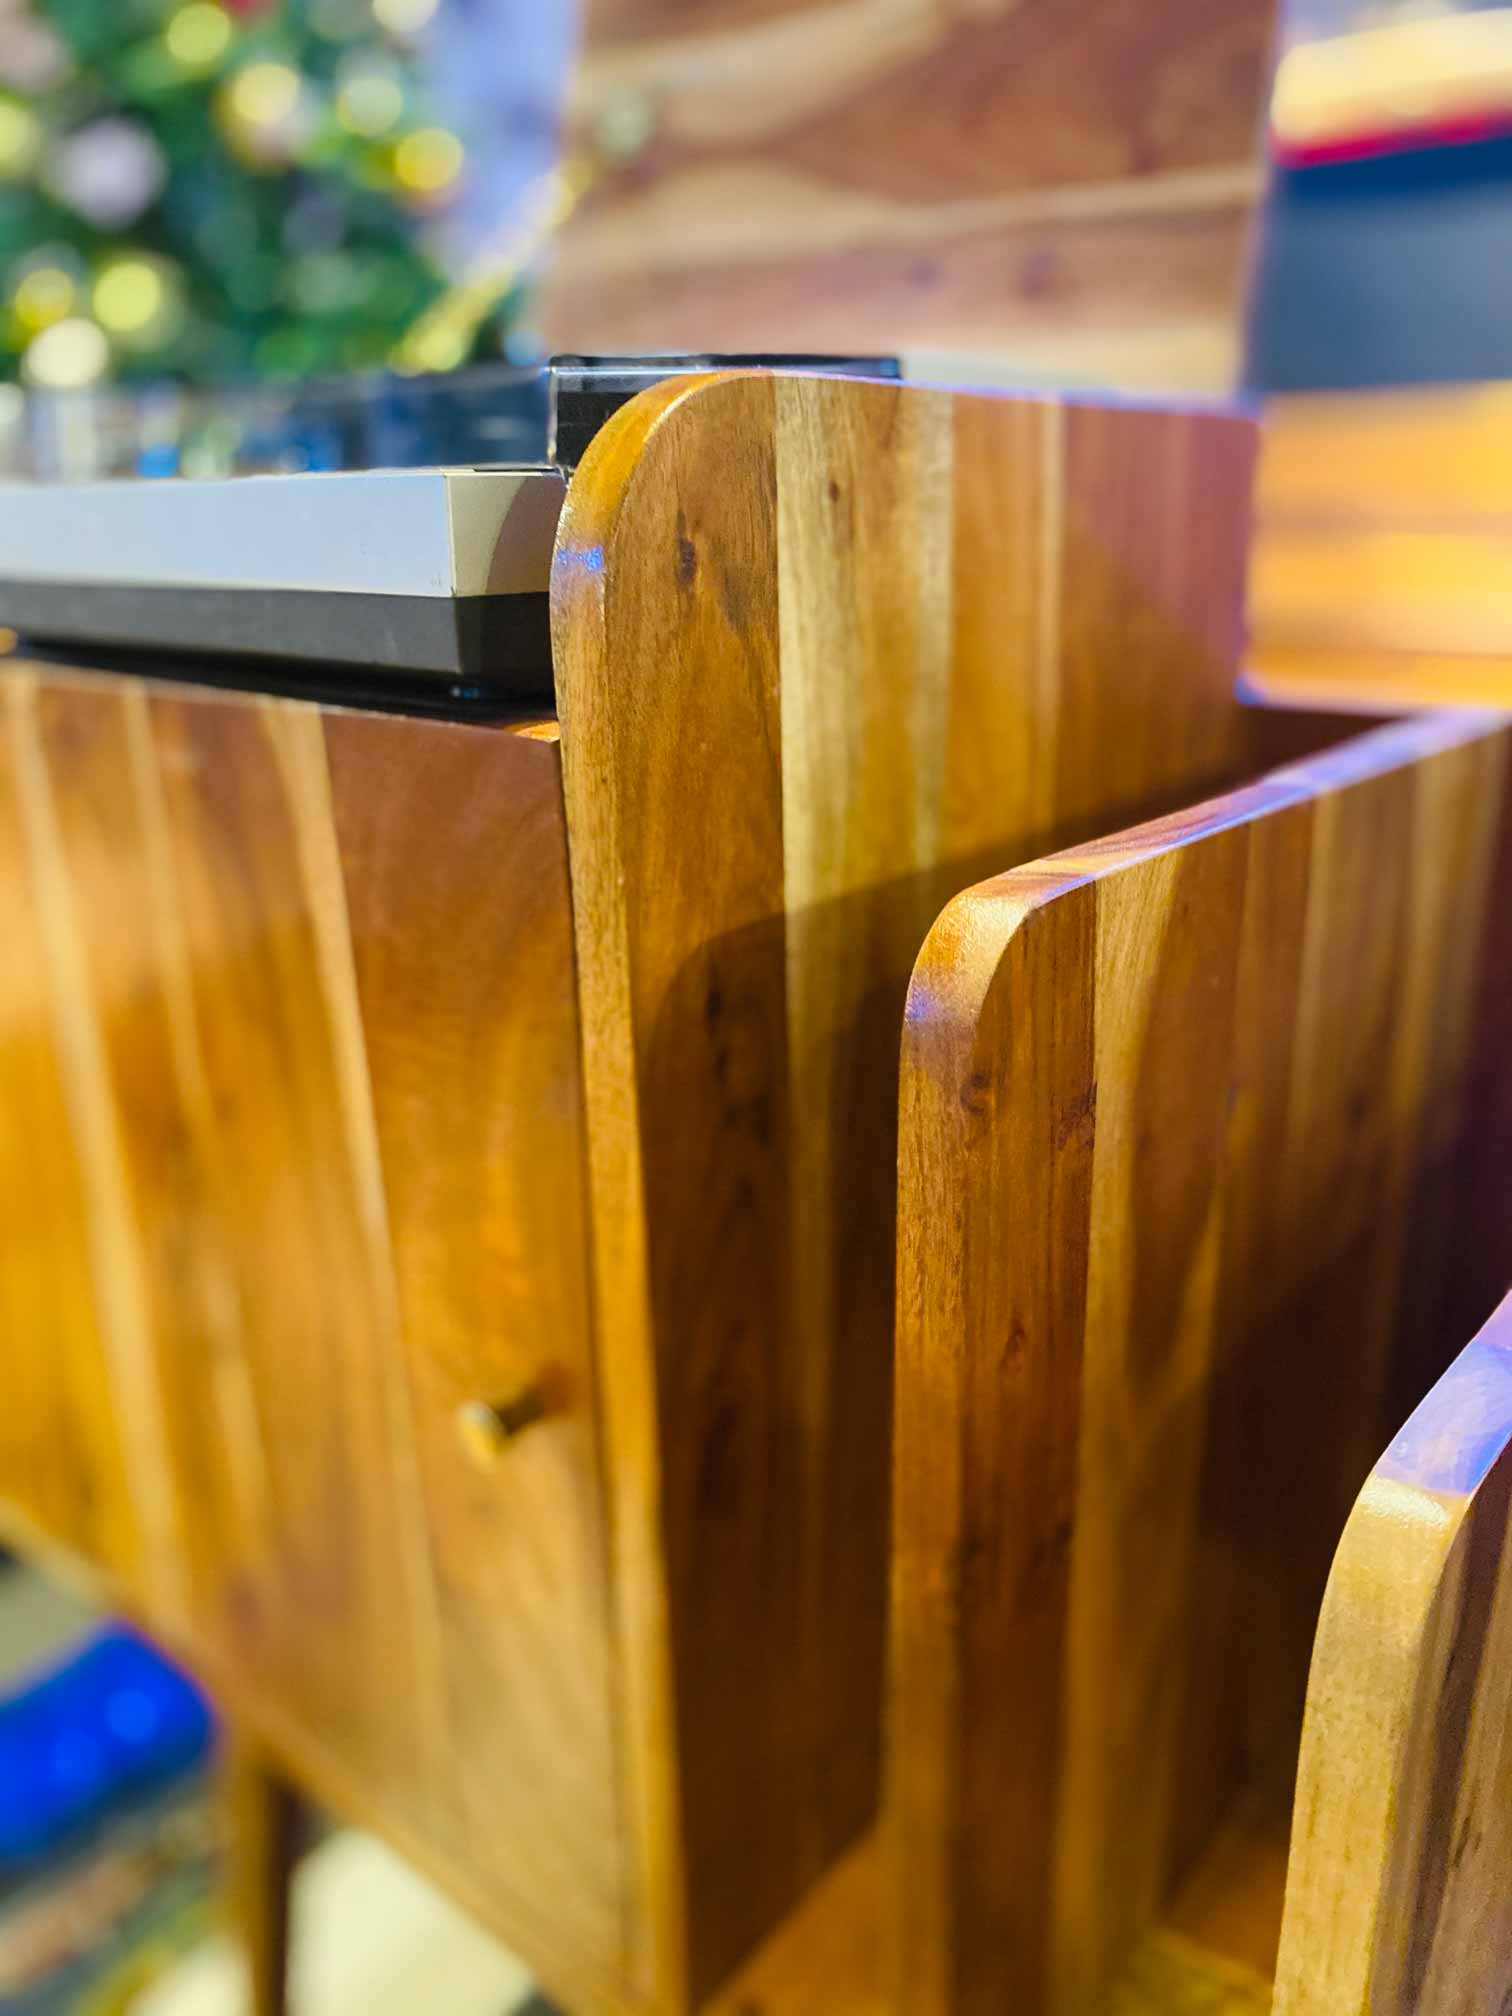 Handcrafted Furniture Singapore Console Detail Closes Up